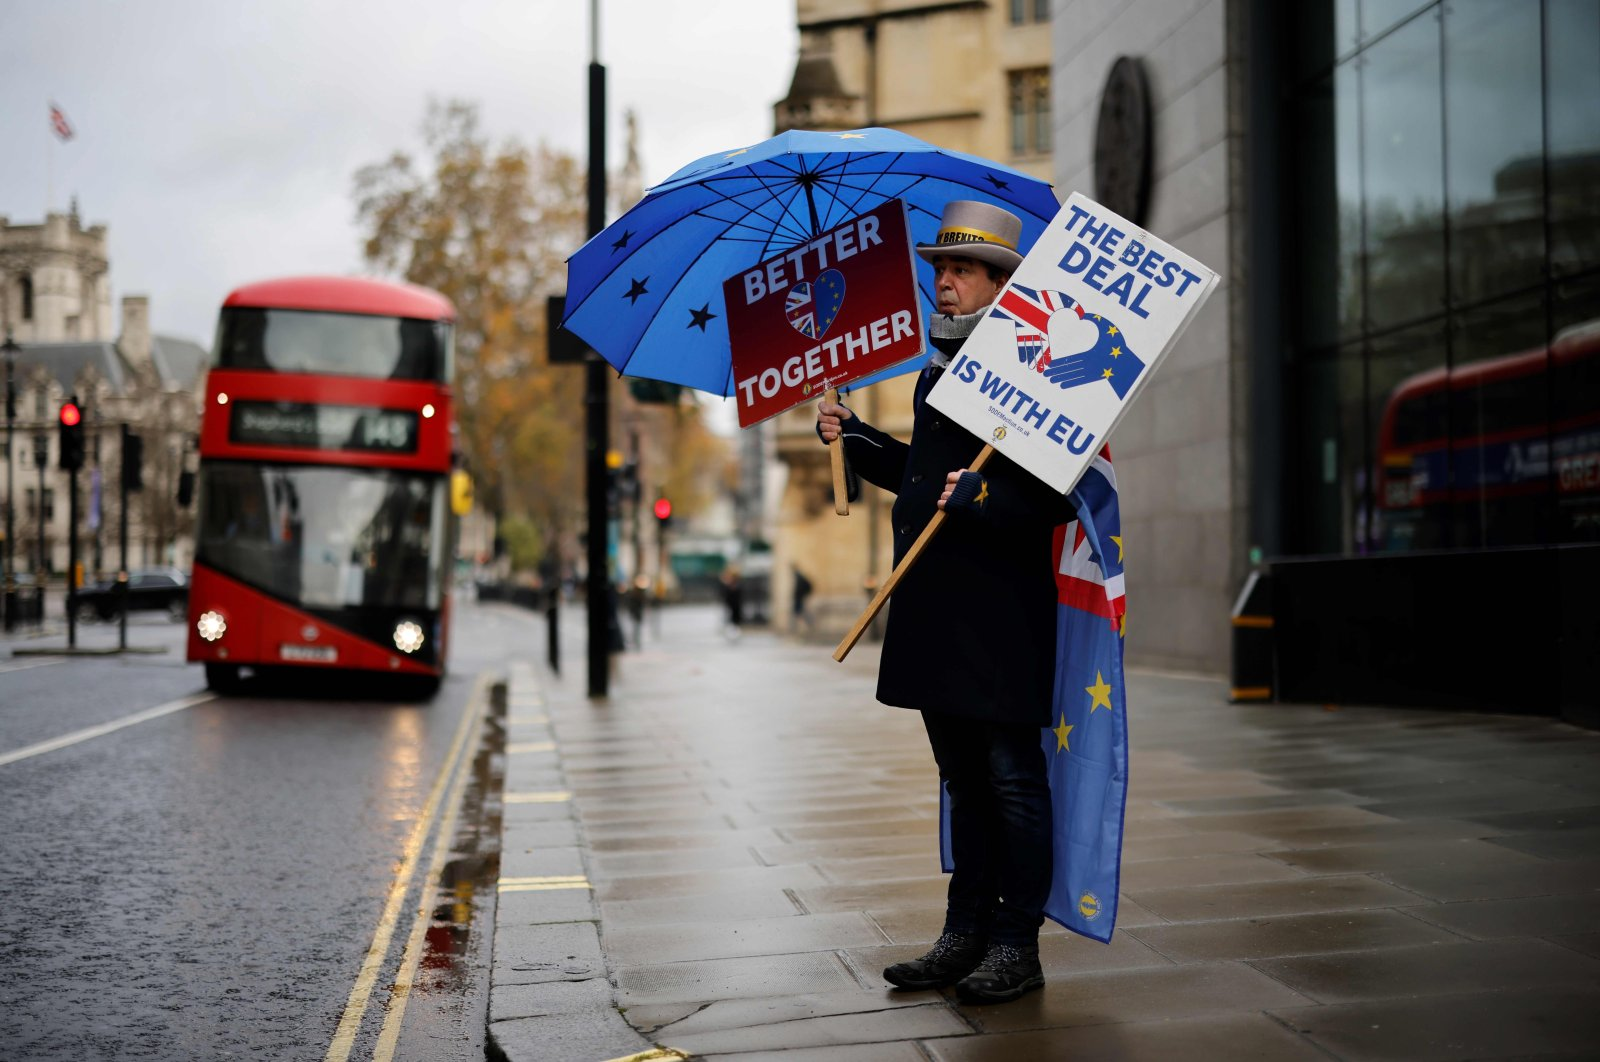 An anti-Brexiteer activist holds placards and an EU-themed umbrella as he stands outside a conference center, London, Dec. 4, 2020. (AFP Photo)